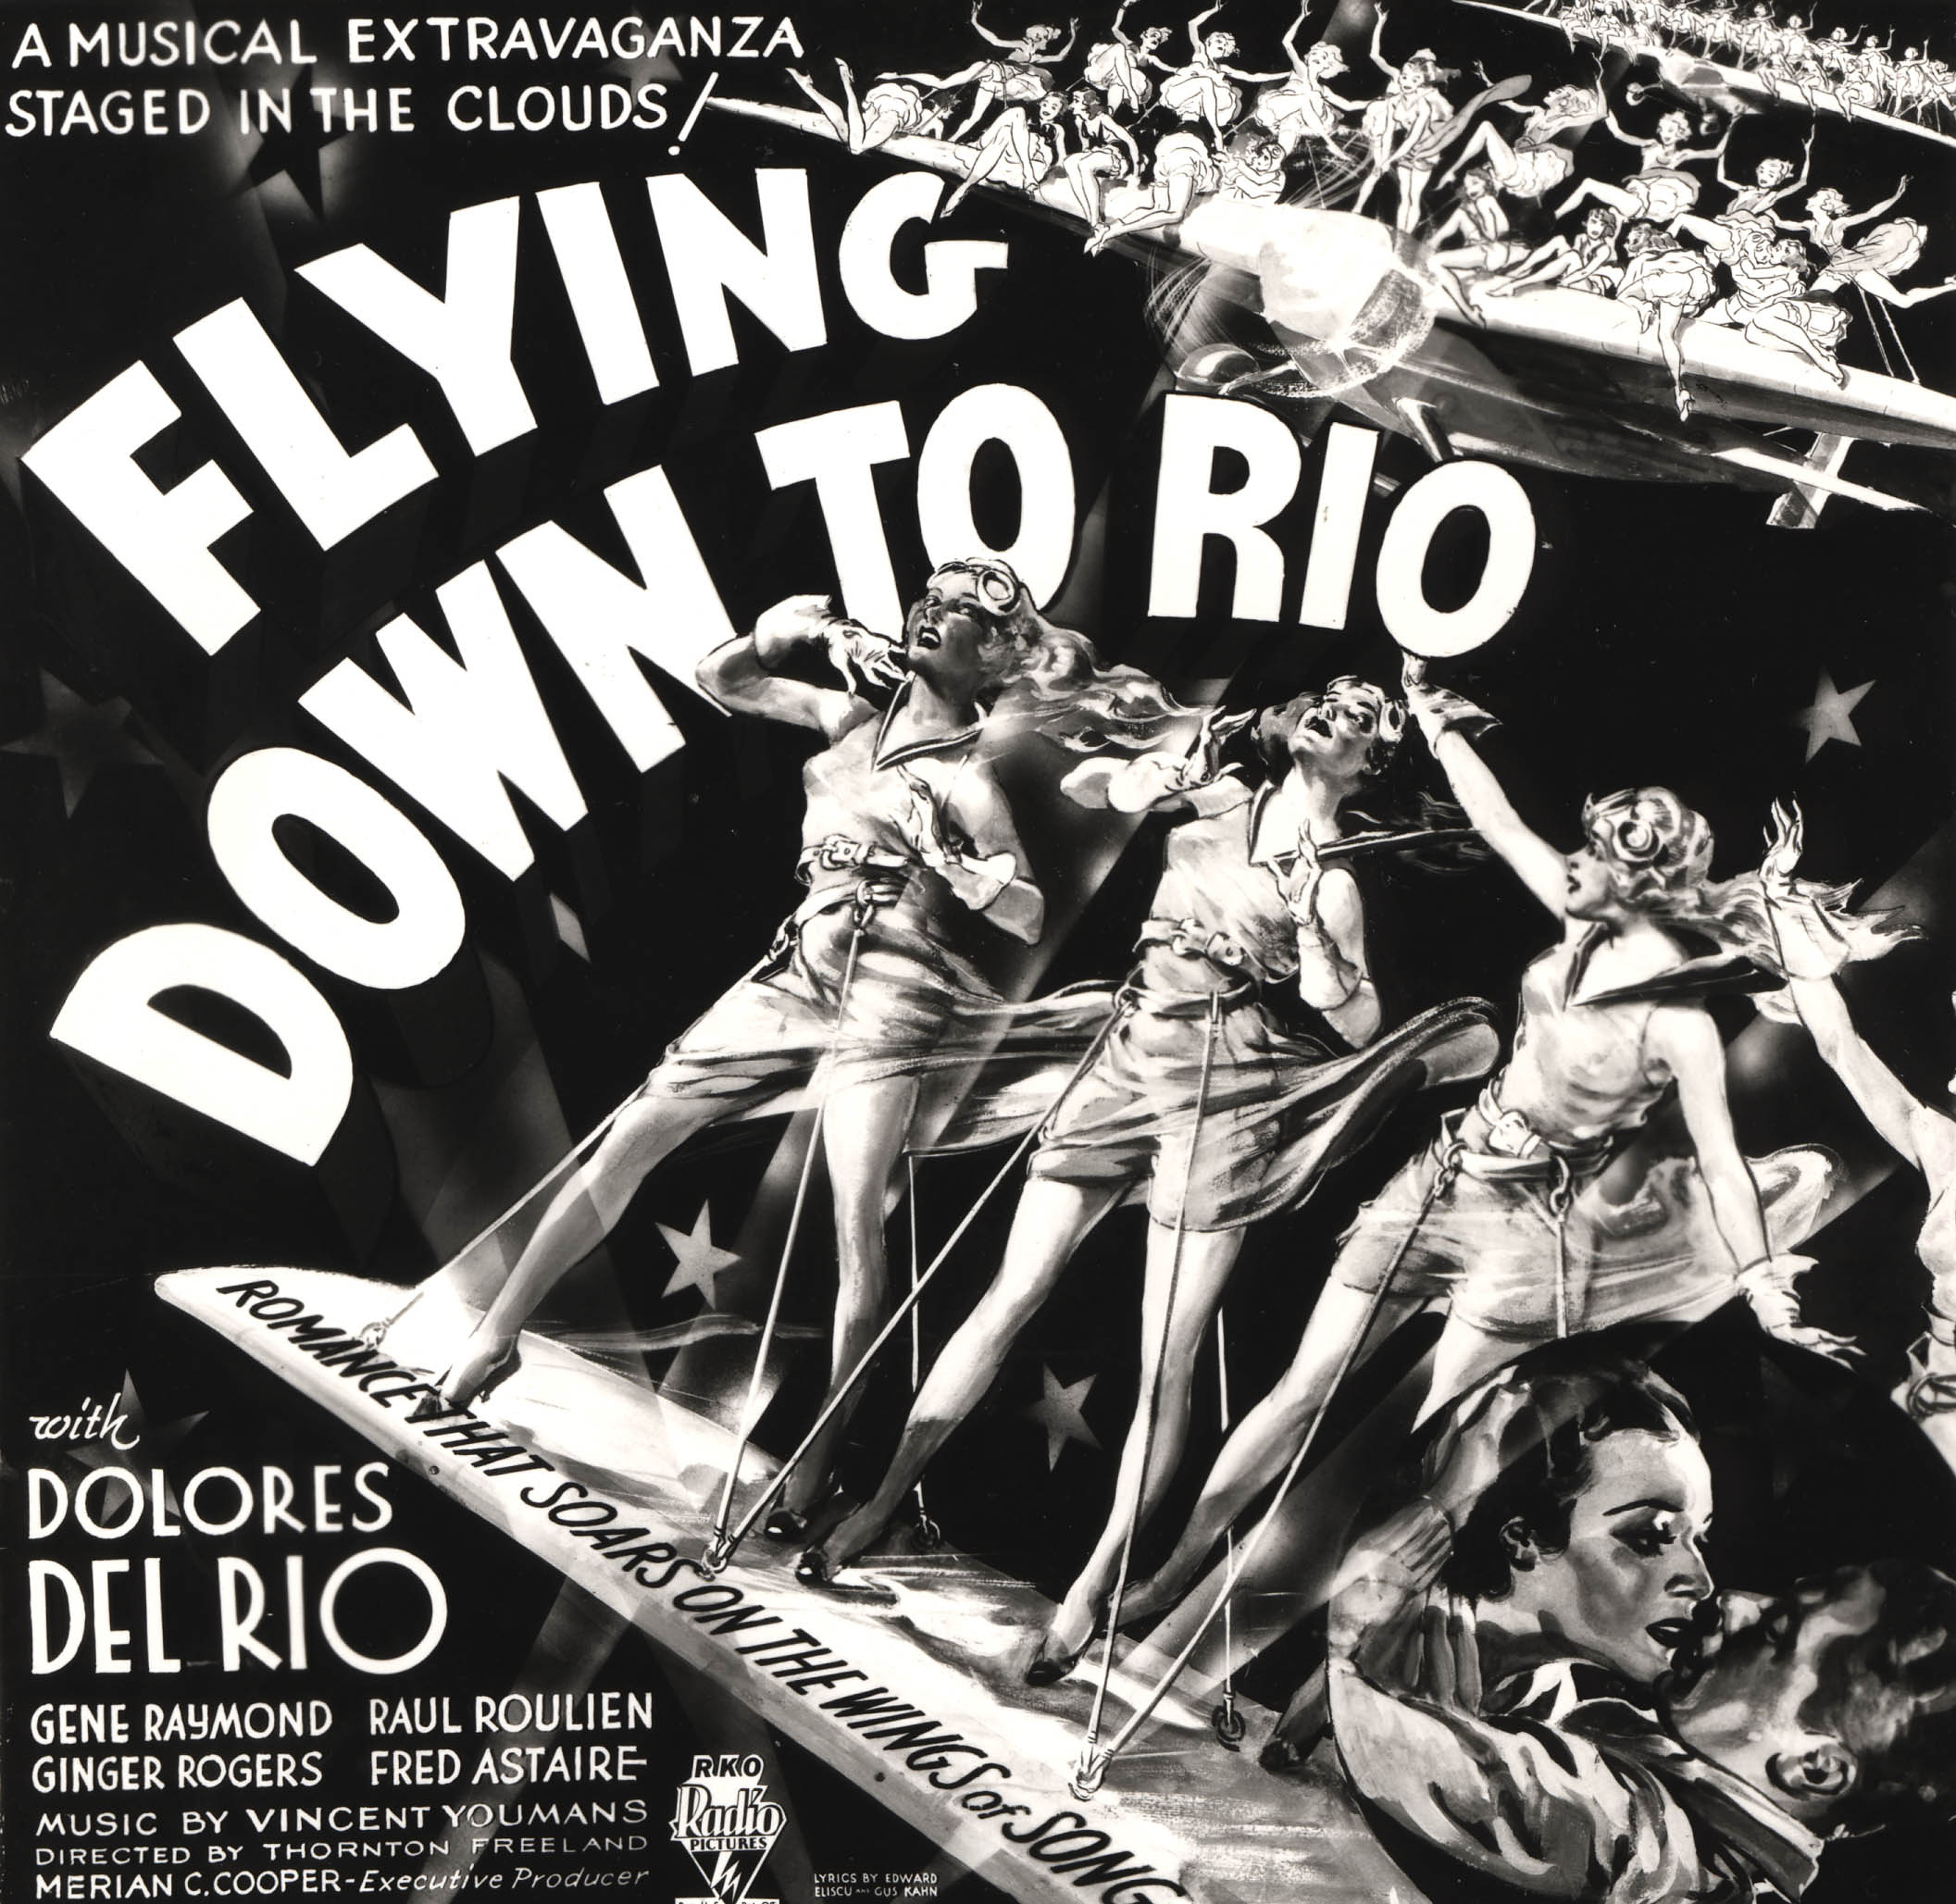 https://news.wisc.edu/newsphotos/images/poster_Flying_Down_to_Rio05.jpg